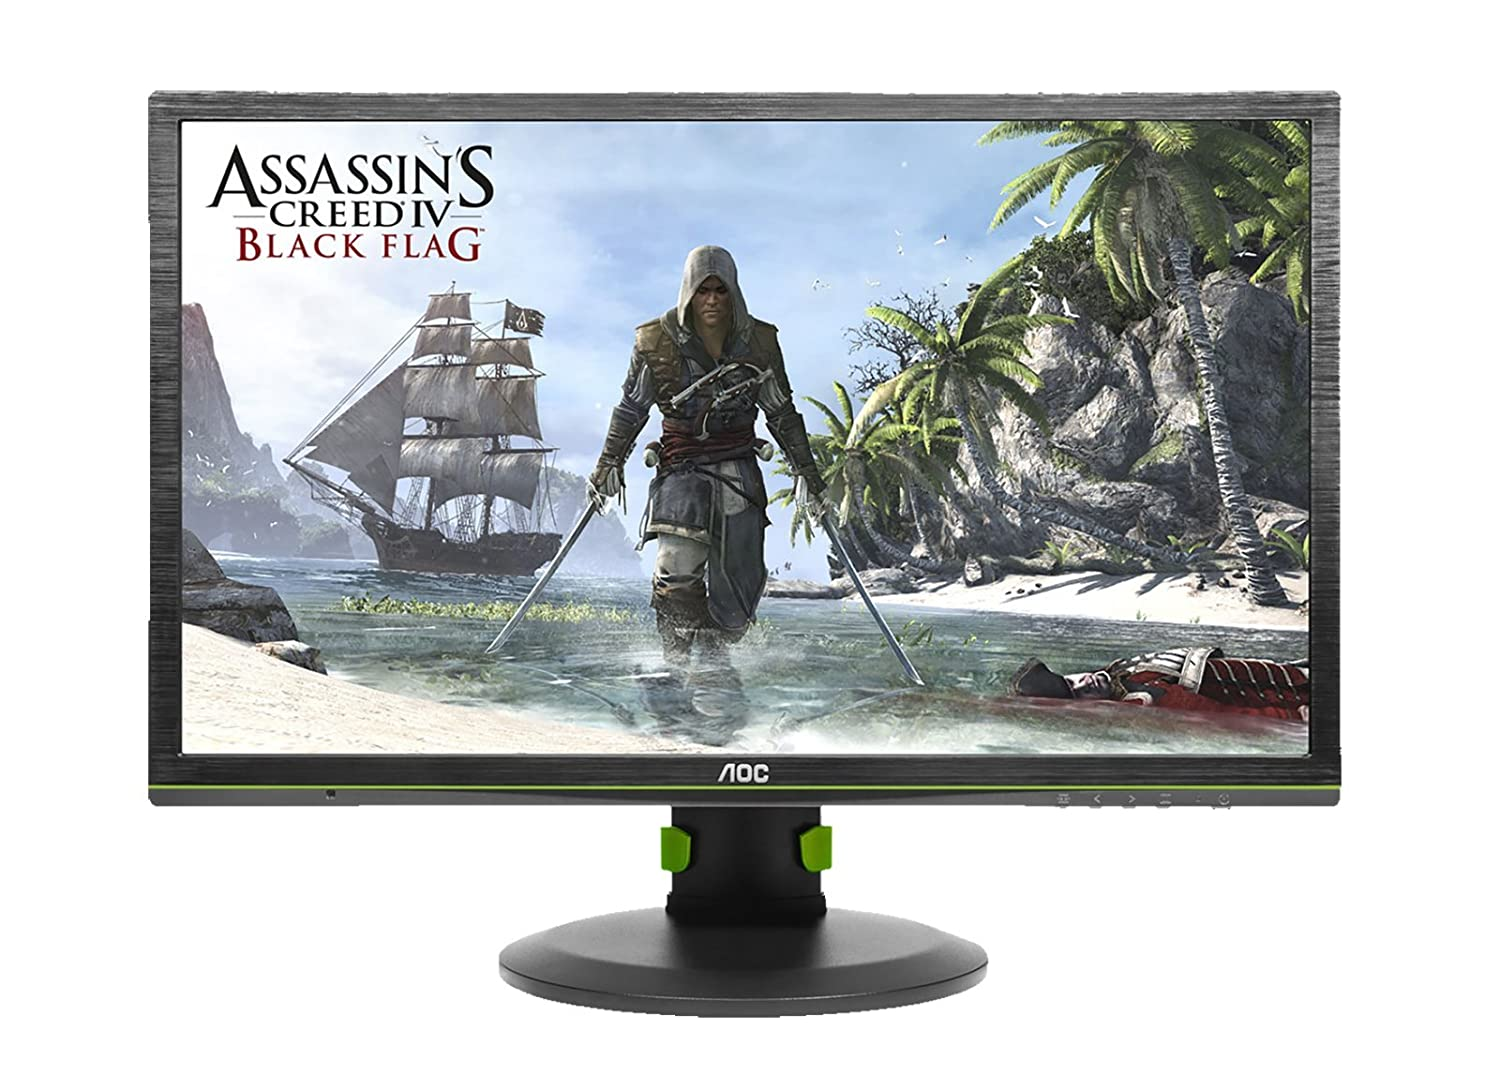 AOC G2460PG Best 144Hz Gaming Monitor